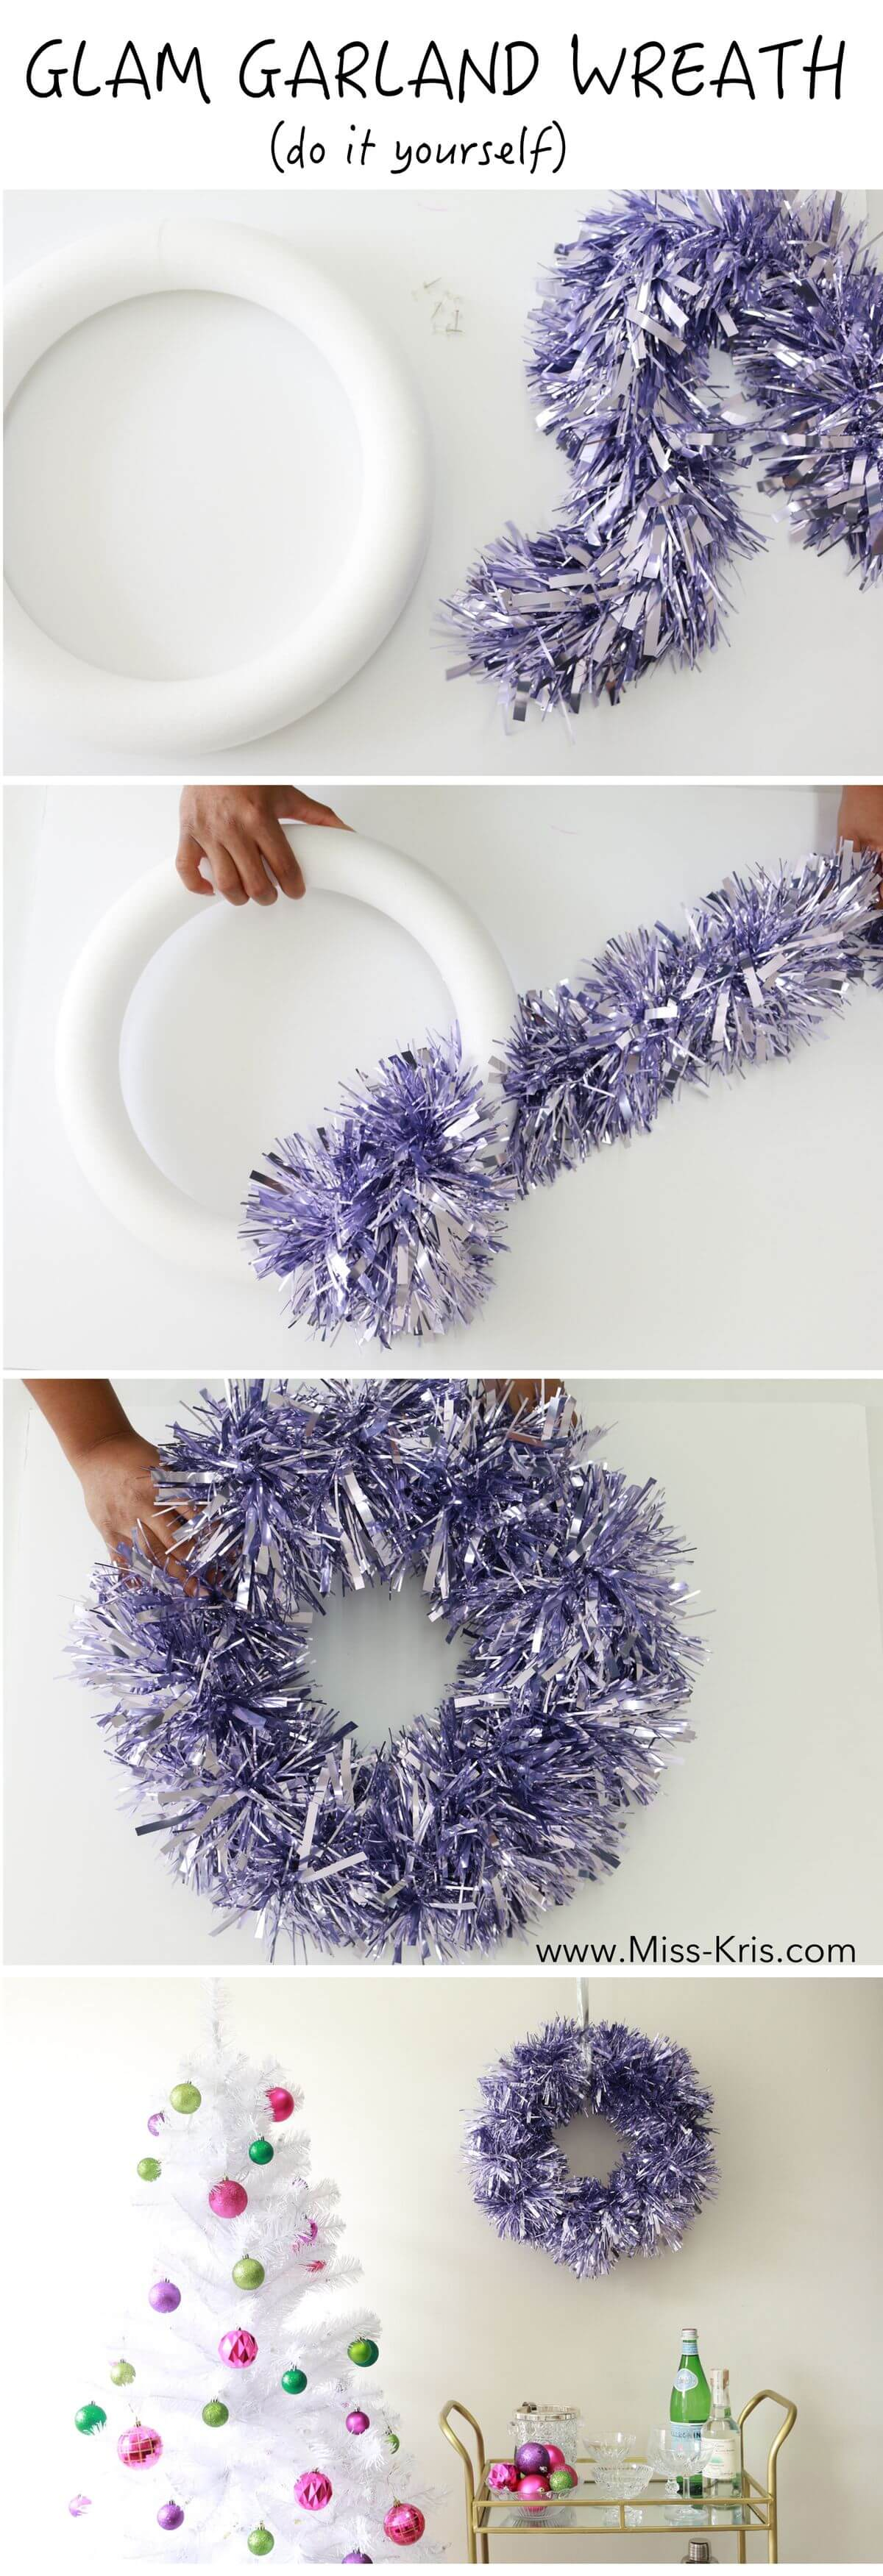 Add Some Sparkle with a Tinsel Wreath